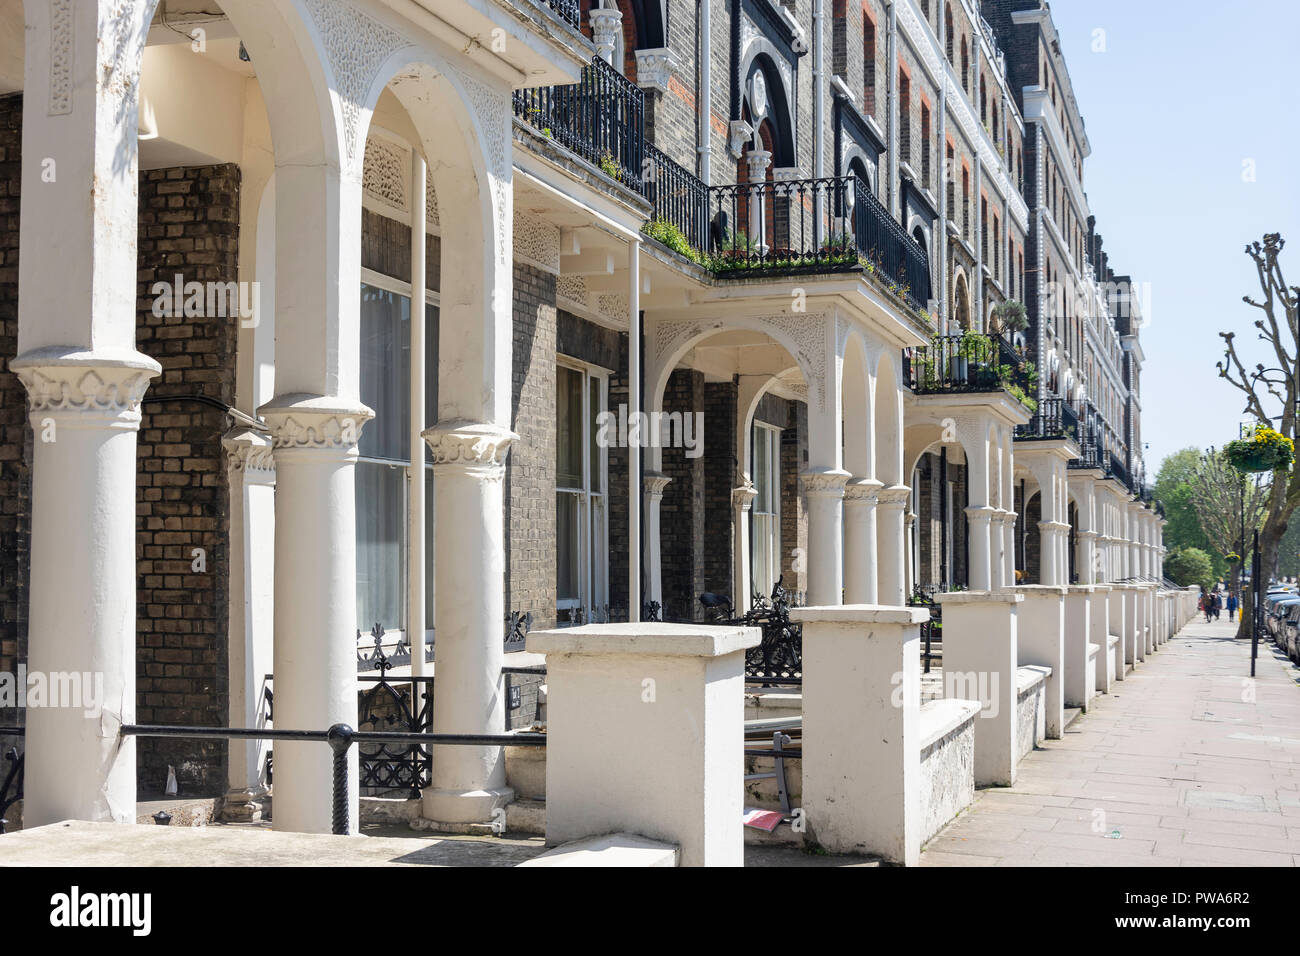 Period terraced properties, Randolph Avenue, Maida Vale, City of Westminster, Greater London, England, United Kingdom - Stock Image